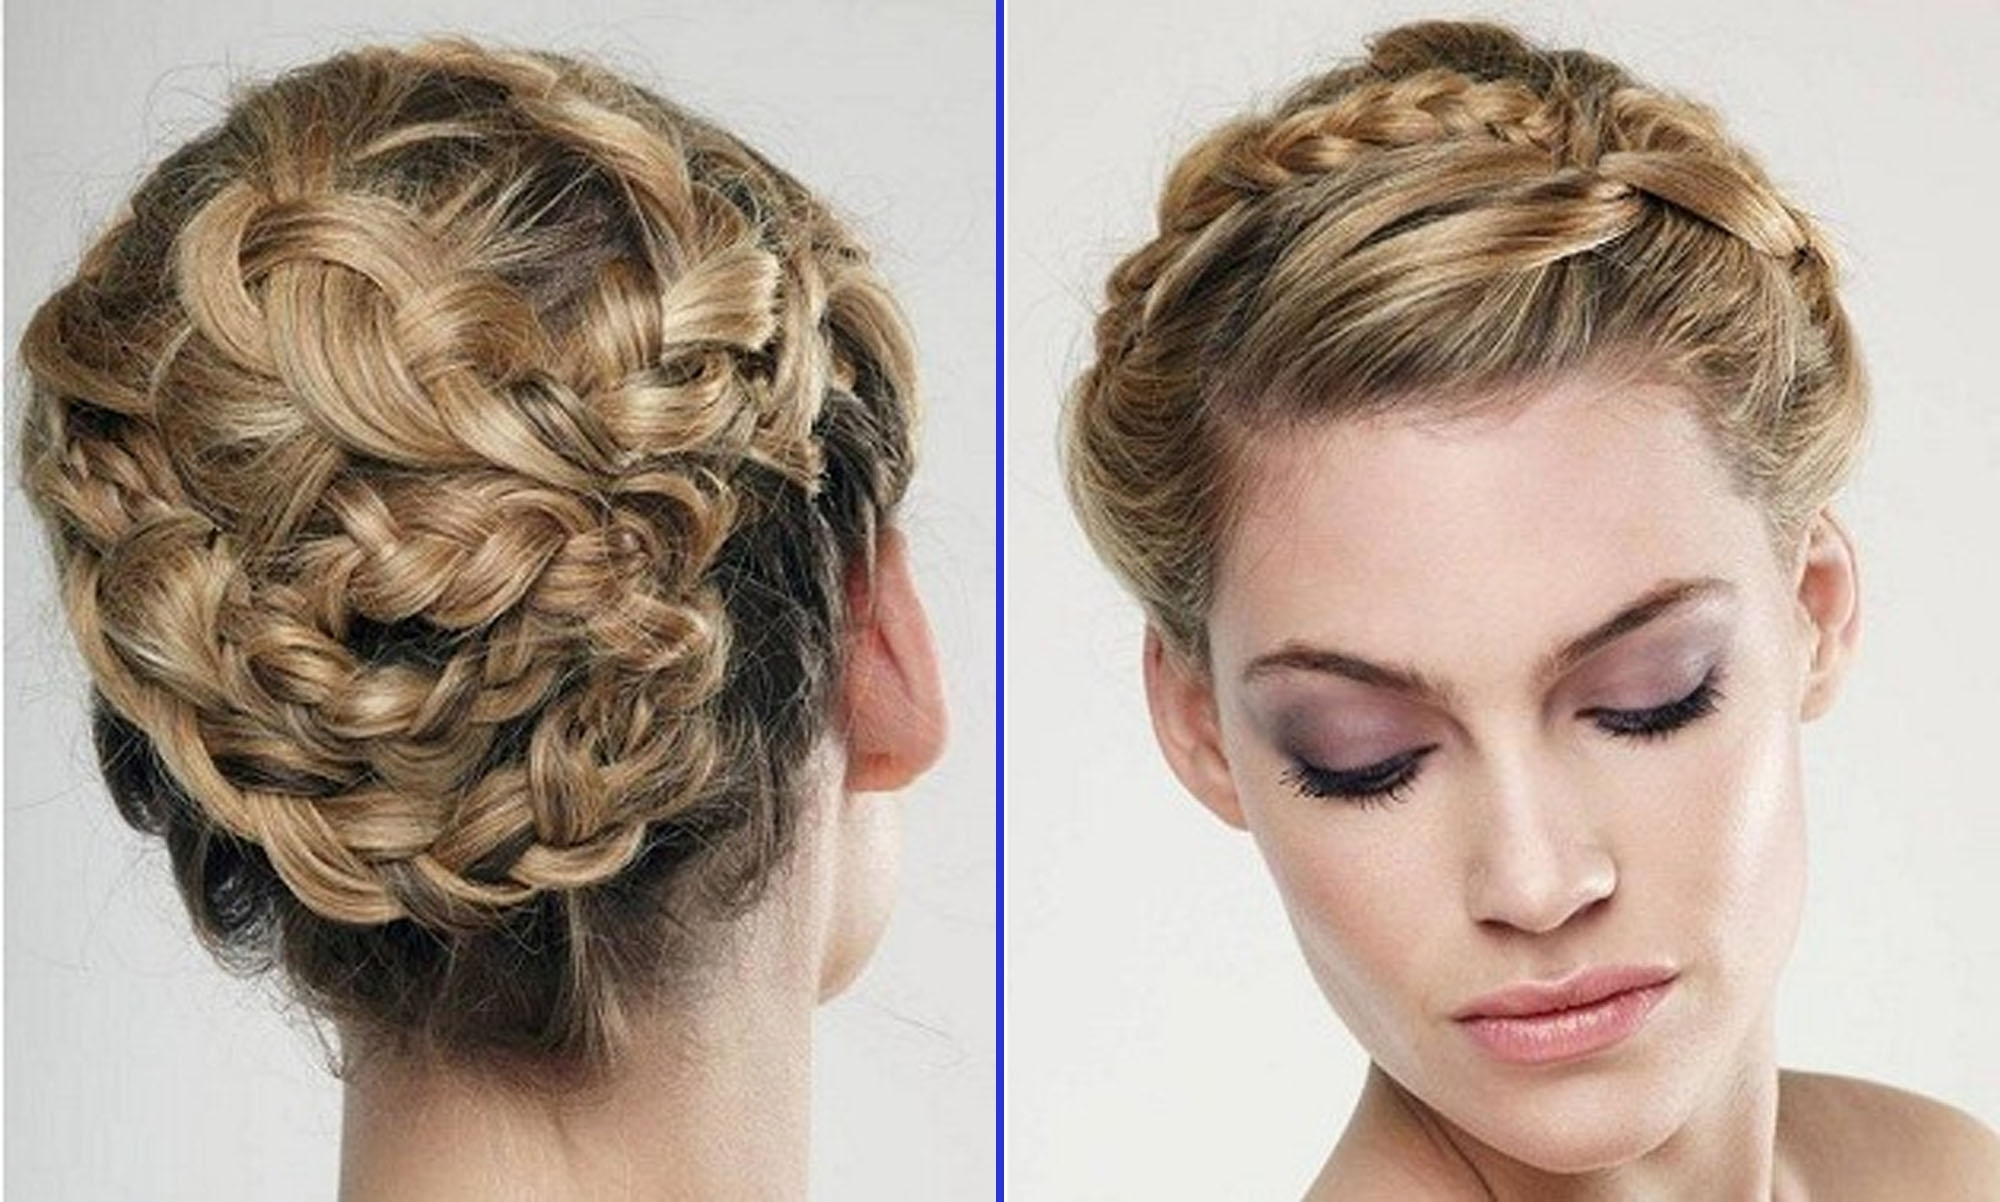 Best And Newest Wavy And Braided Hairstyles Within Braided Updo Hairstyles Wedding For Women Hairdresser (View 2 of 20)